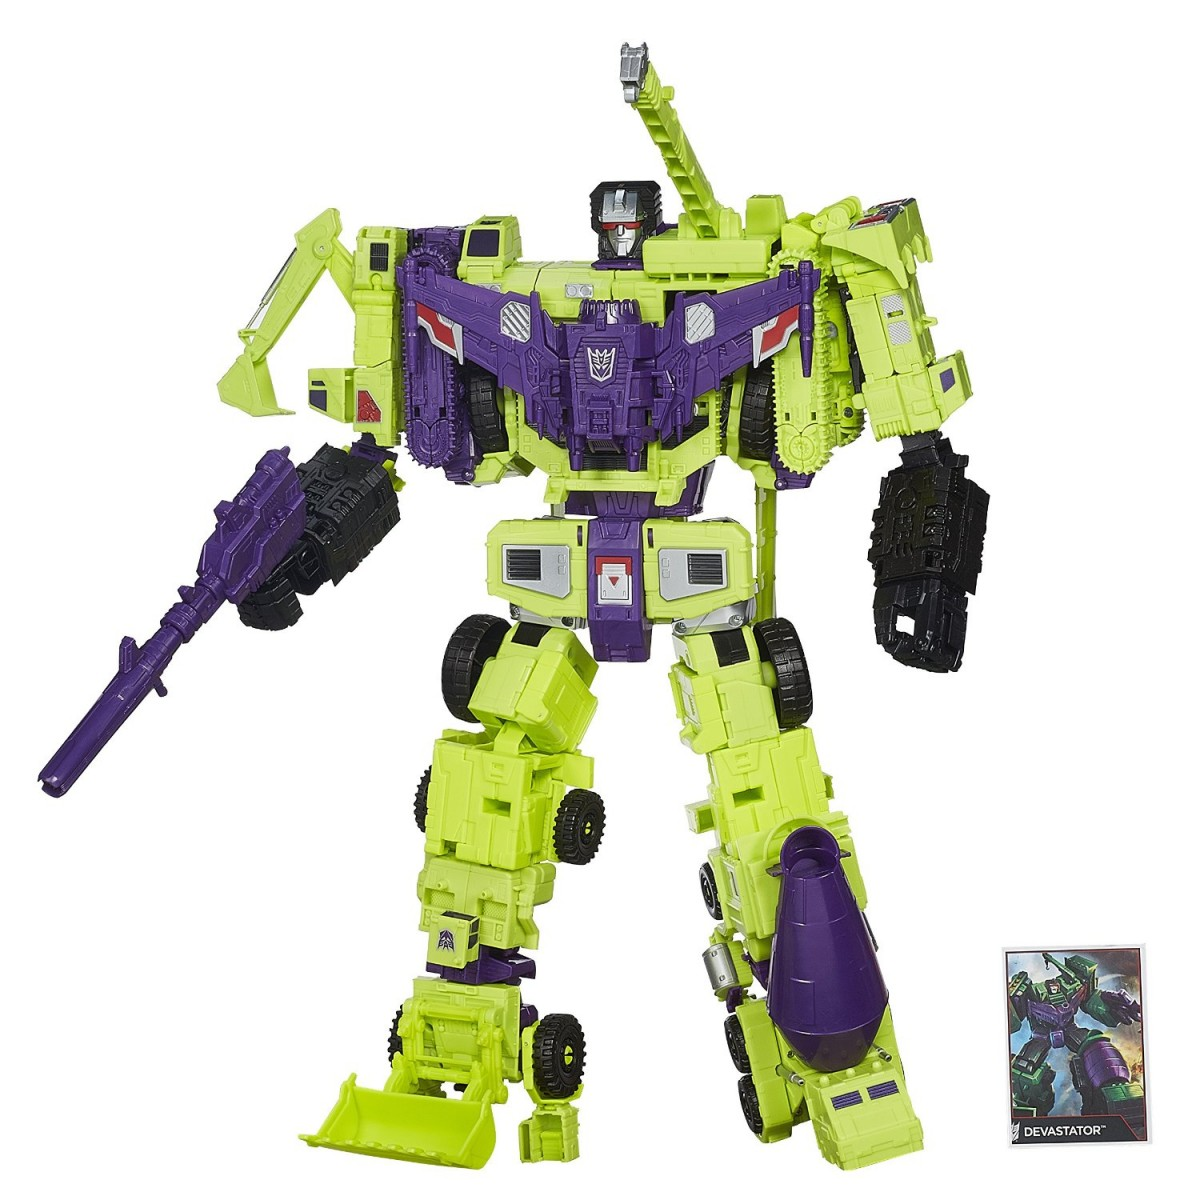 Transformers News: Combiner Wars Devastator Listed (But Not Yet For Sale) On Amazon.com